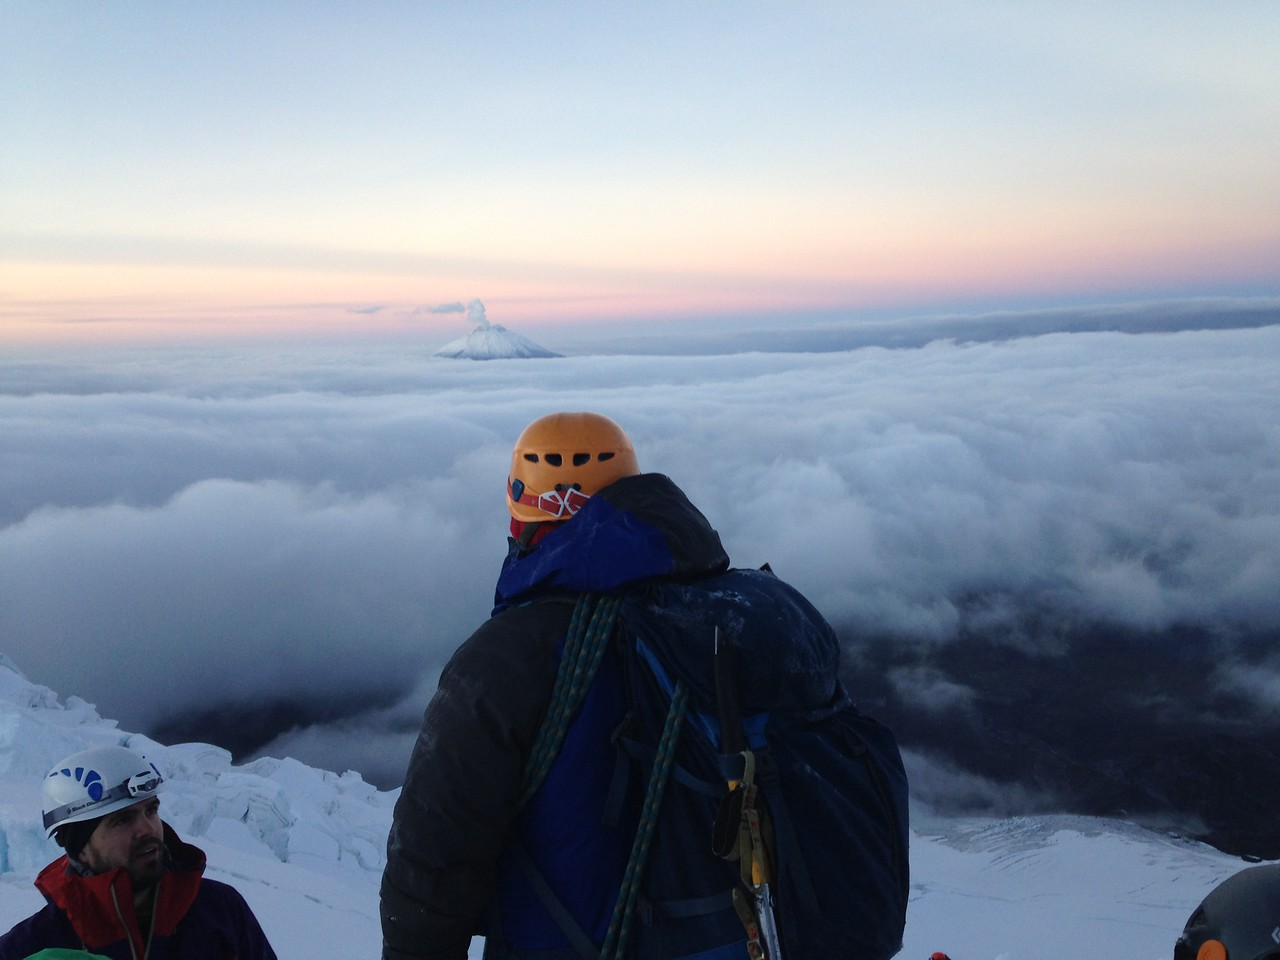 Guide Romel Sandoval pauses to watch a steaming Cotopaxi in the distance while ascending Antisana.